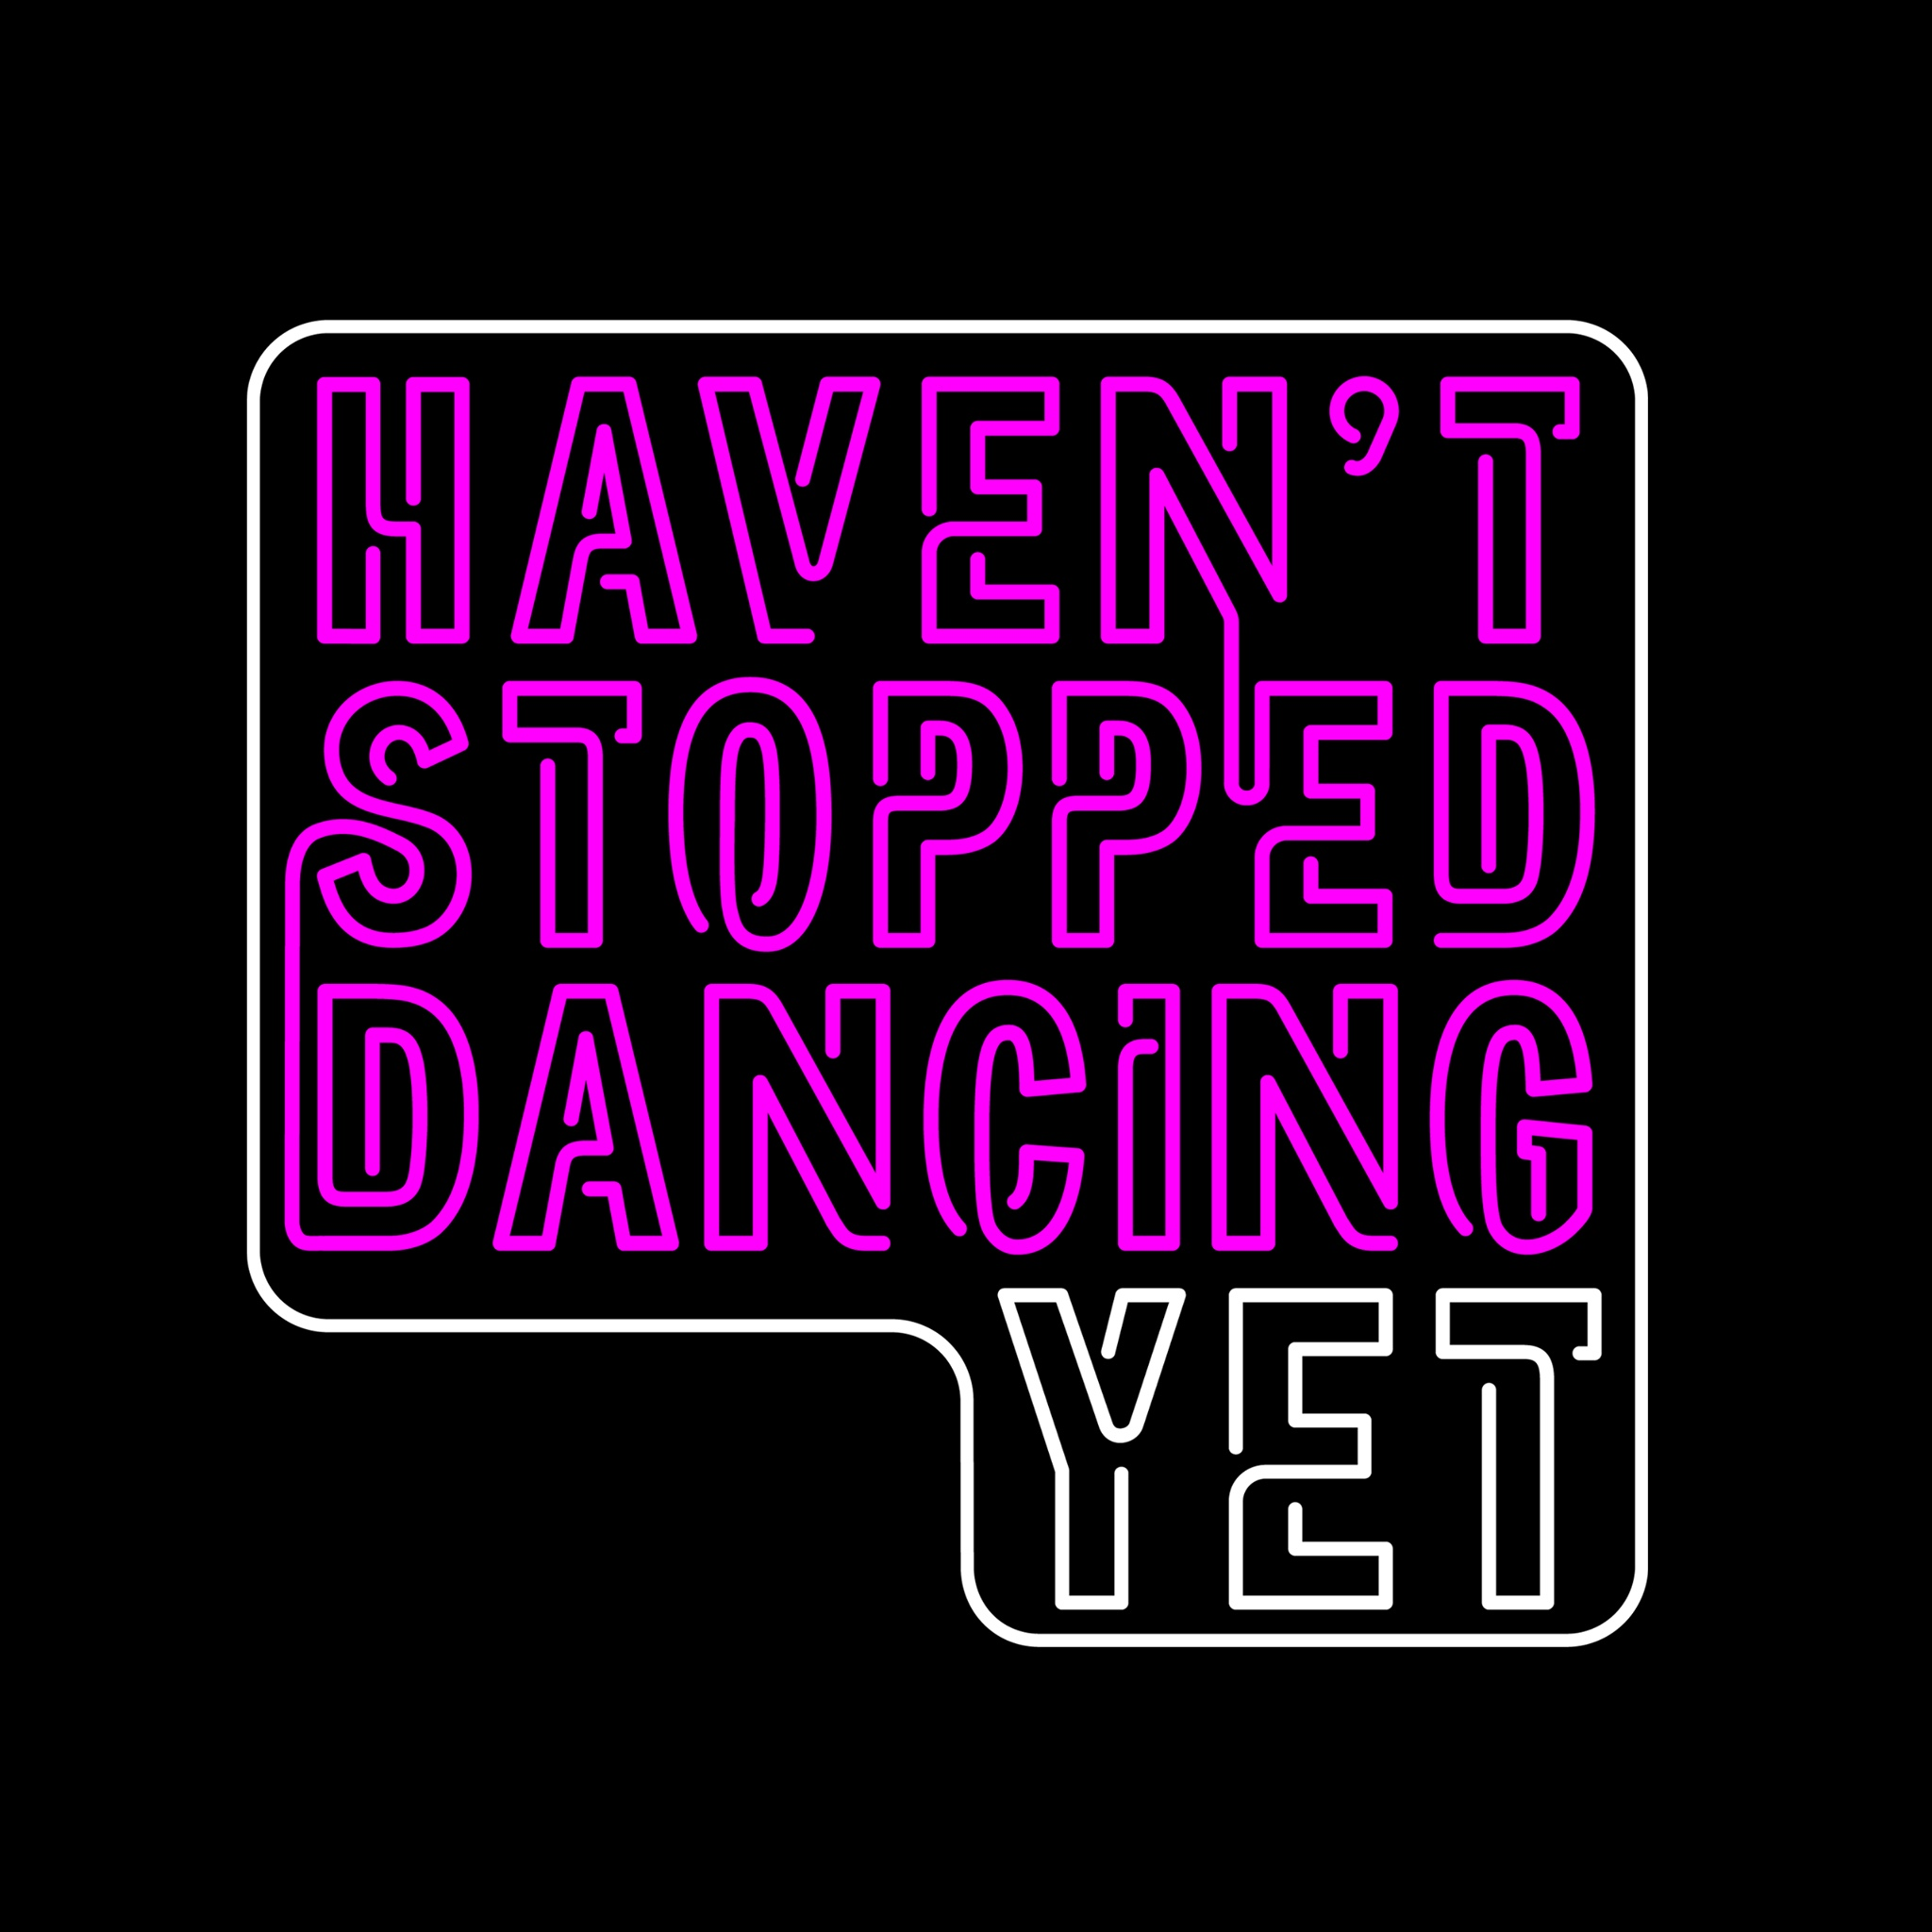 HAVEN'T STOPPED DANCING YET - GREENWICH - Saturday 12th October 2019Time: 730pm - 1030pmVenue: The Trafalgar, Greenwich